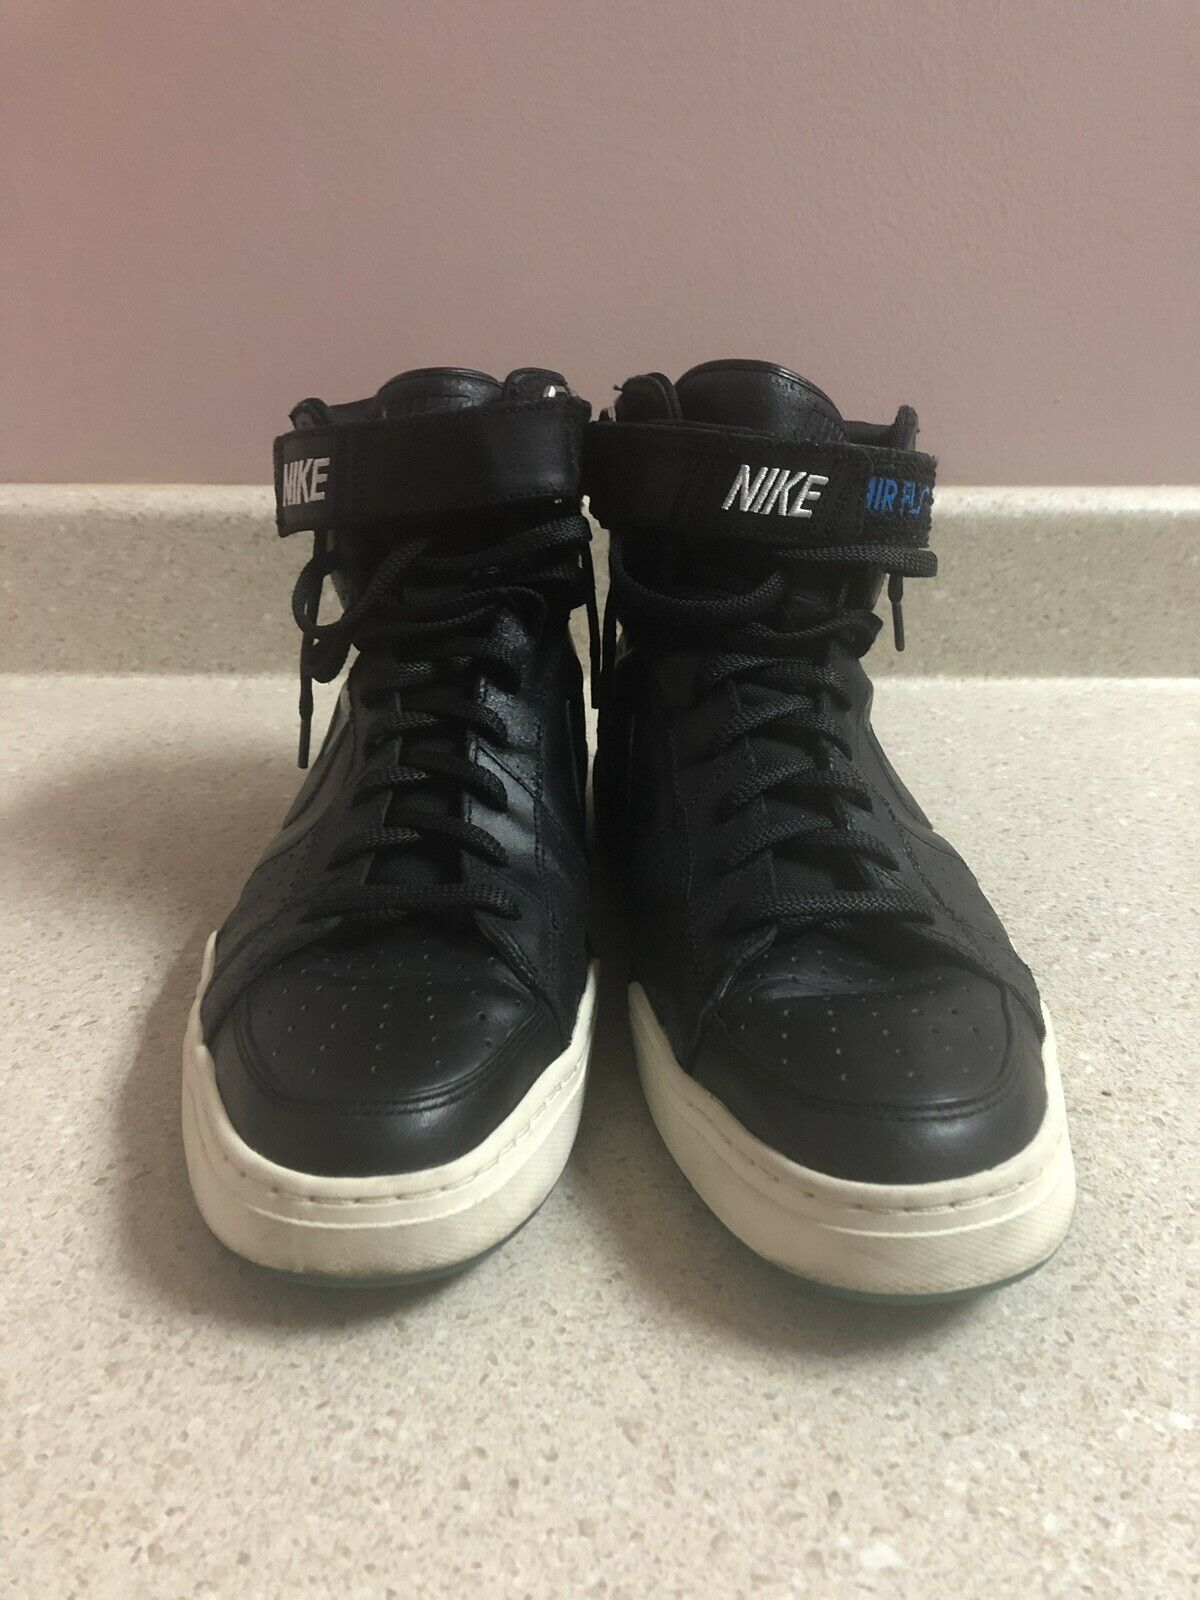 Nike Air Flytop Black Leather (385225-090) SIZE 13